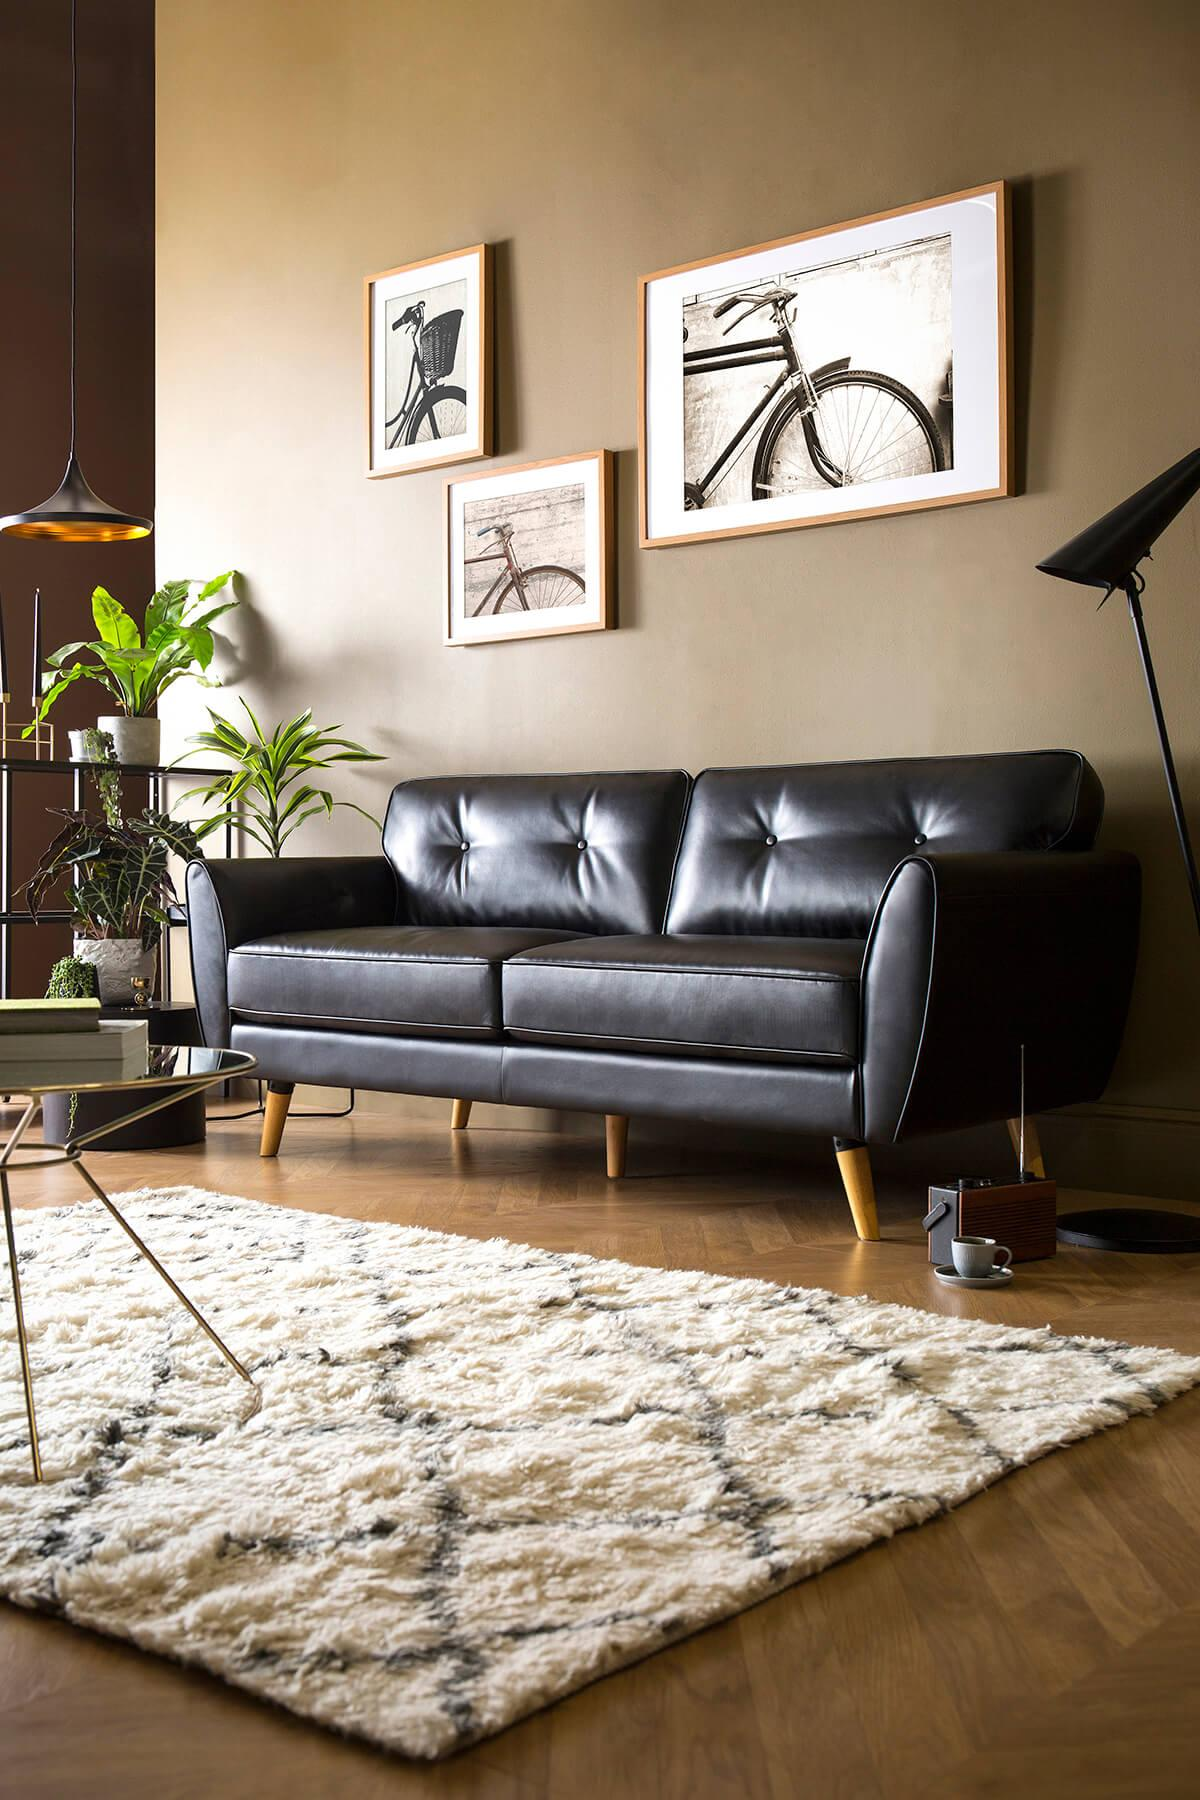 Harlow Black Leather Sofa - 3 Seater